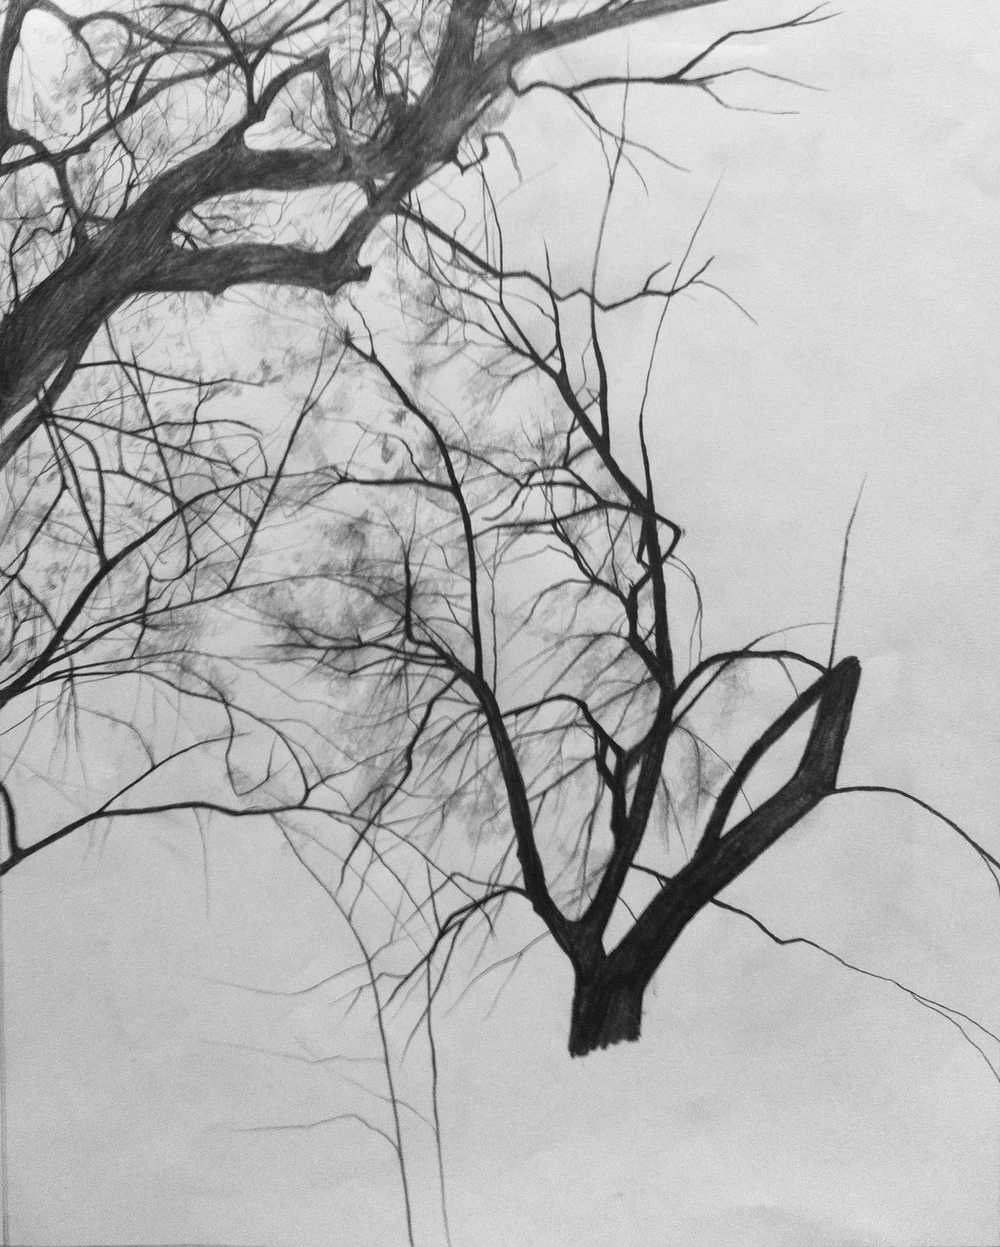 An observational pencil drawing of trees.